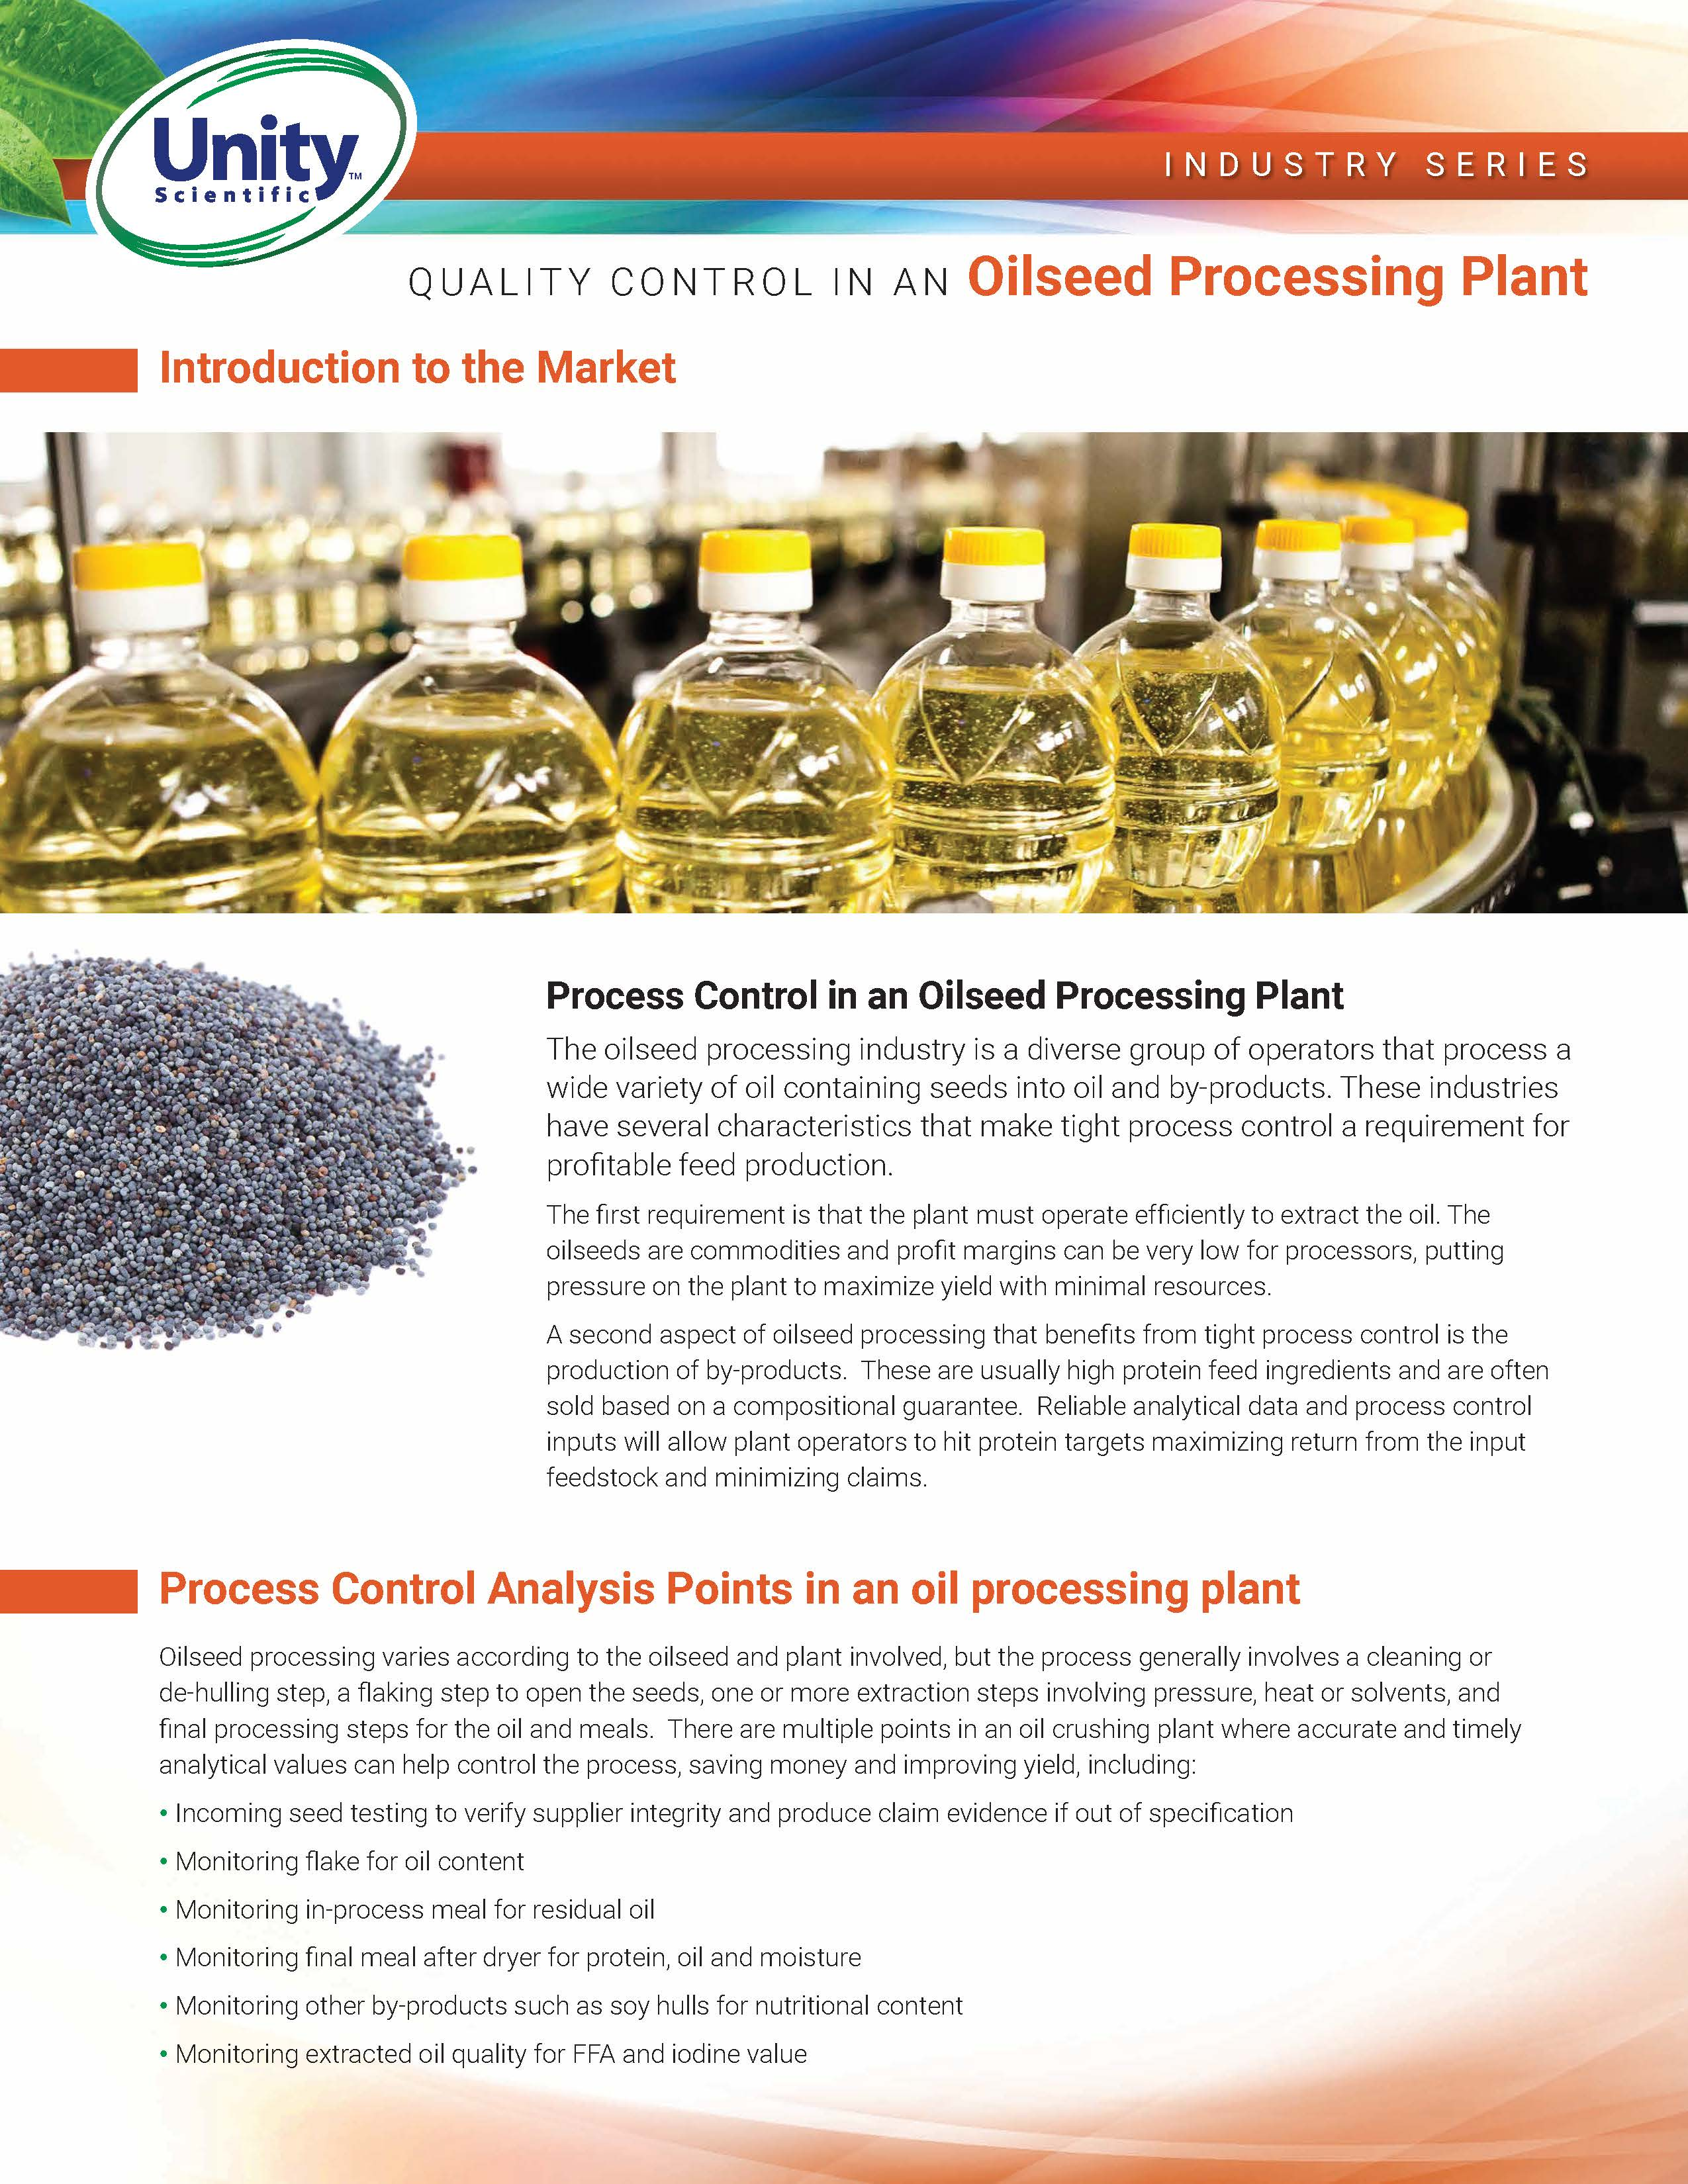 Industry Series - Quality Control In An Oilseed Processing Plant